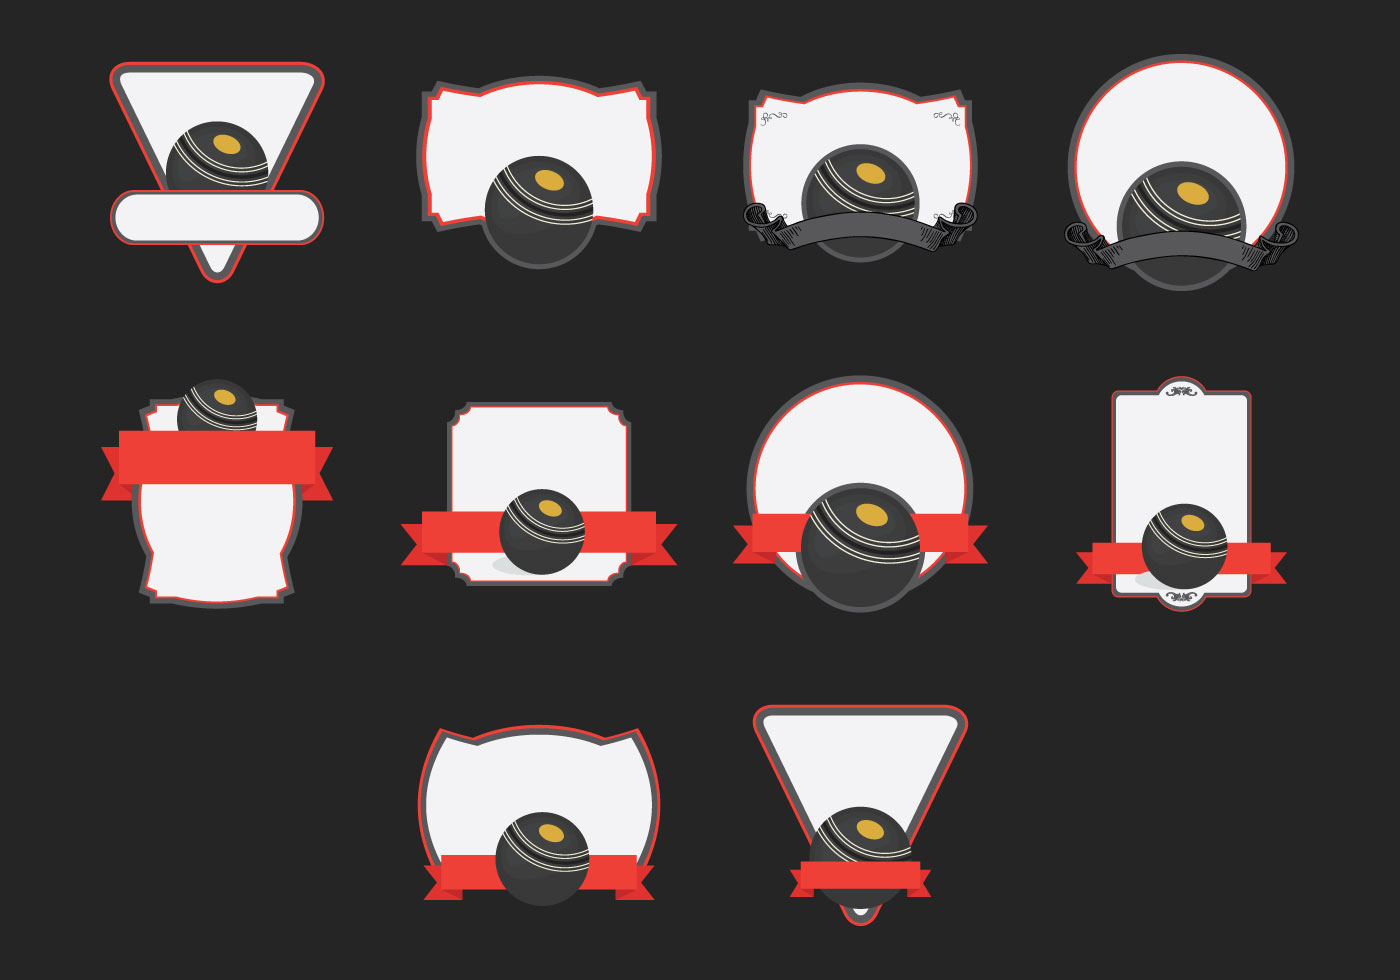 lawn bowls template icon set download free vector art stock